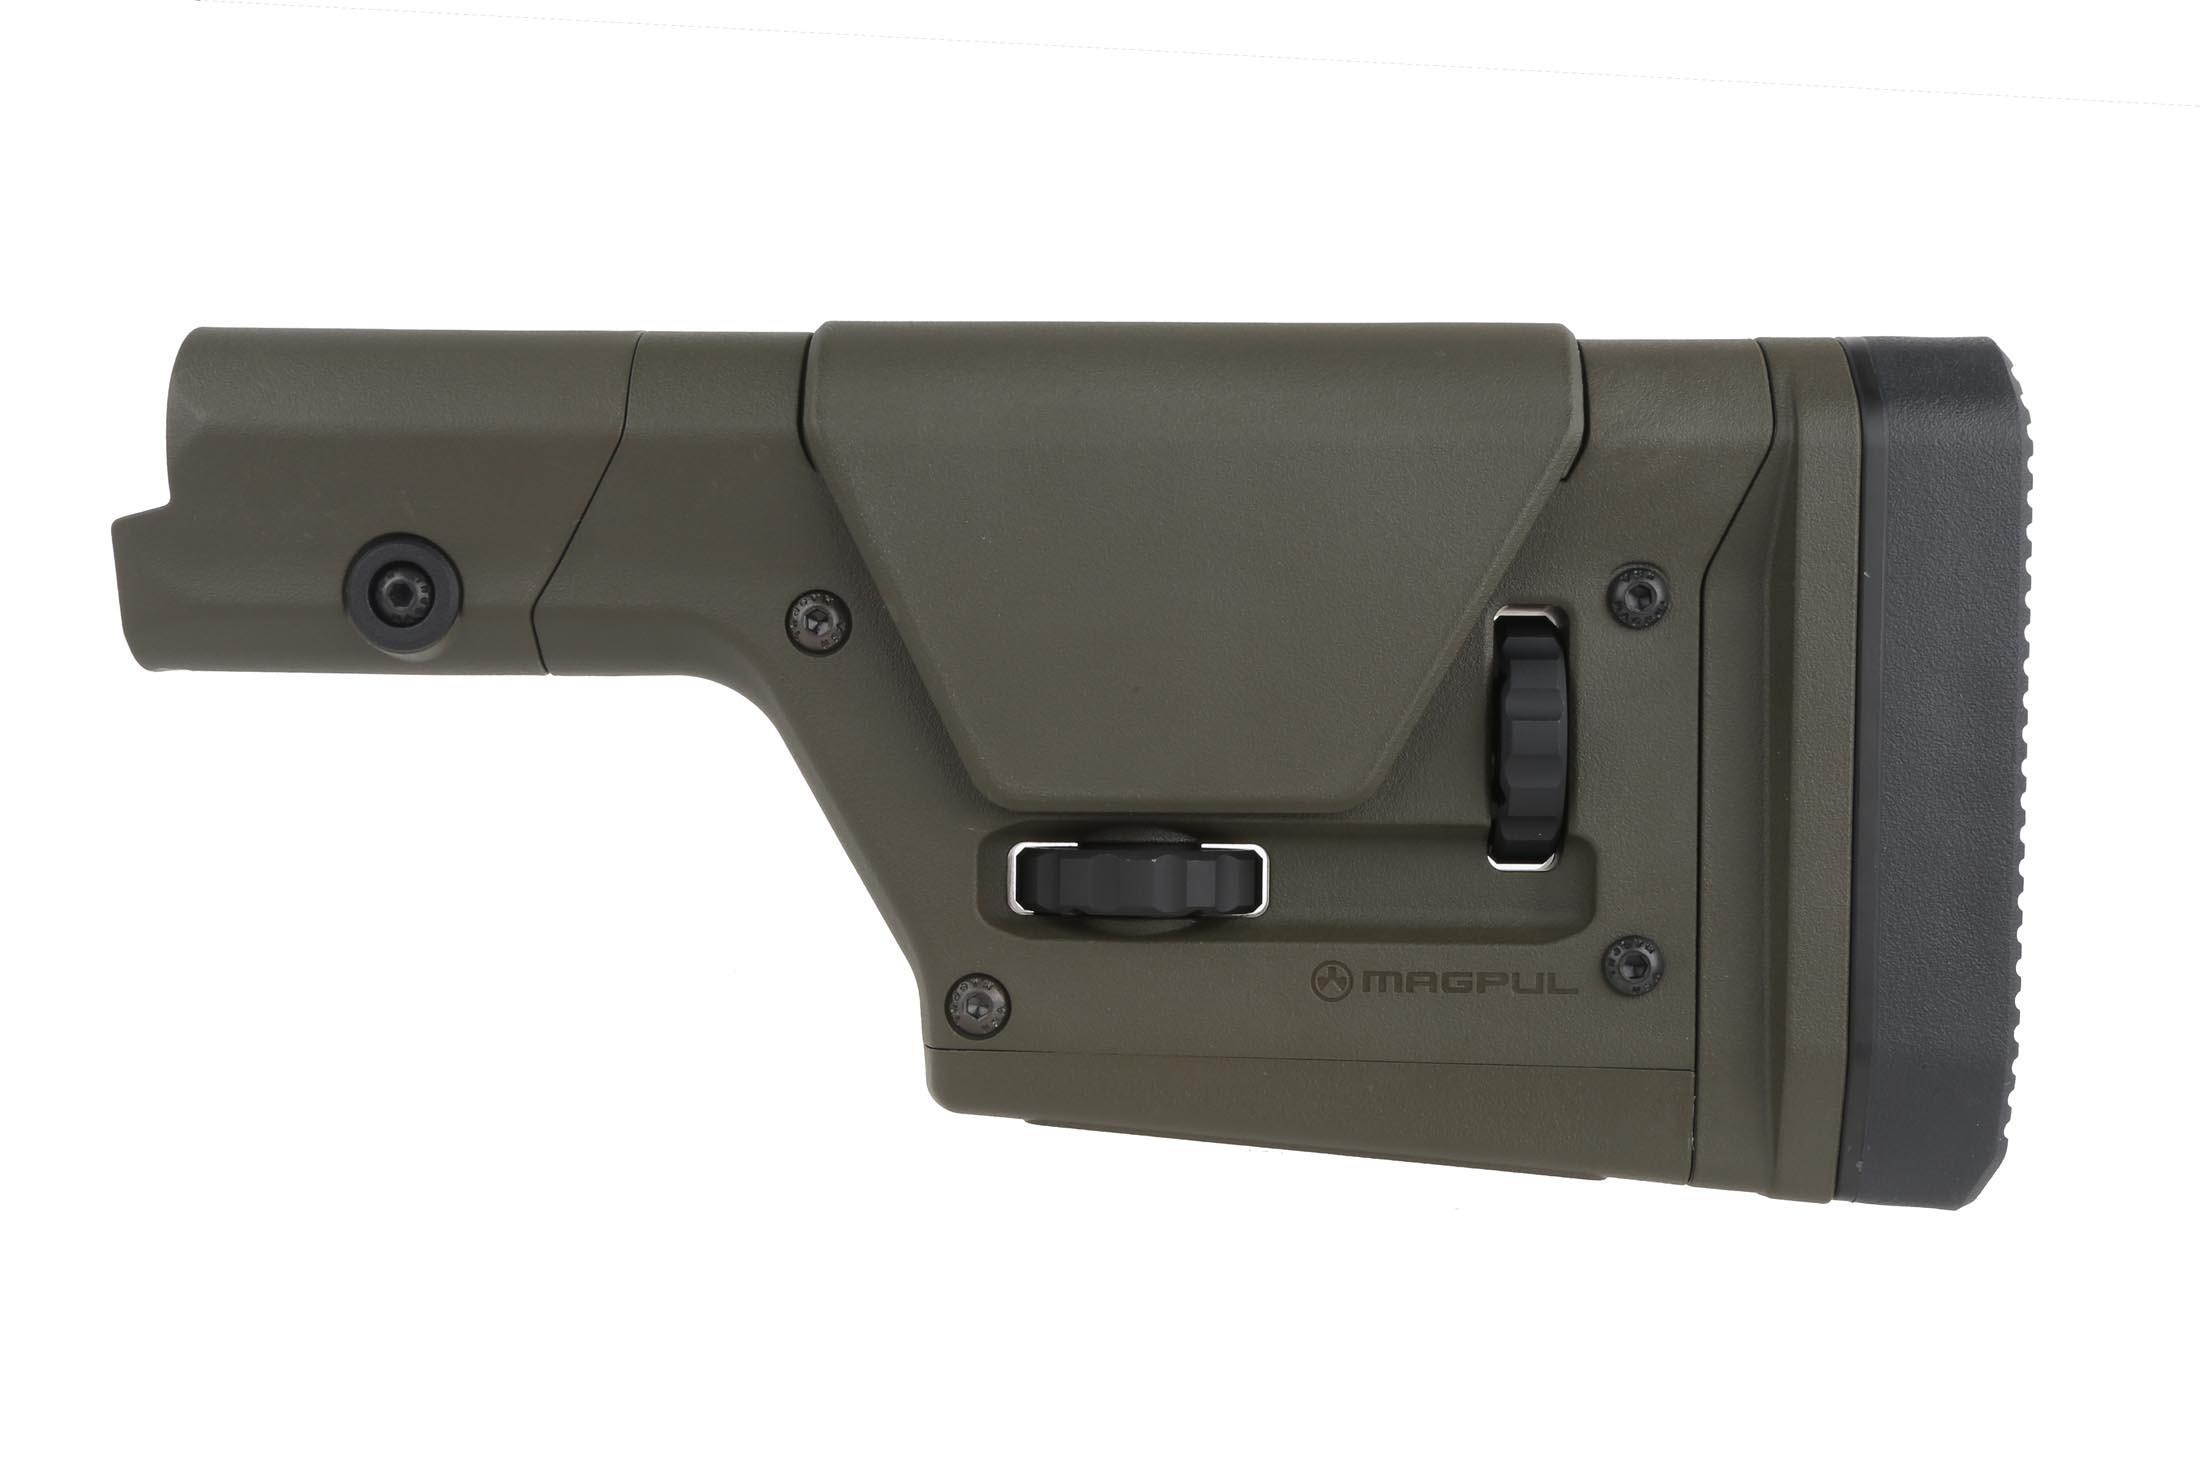 Magpul PRS GEN3 Precision-Adjustable Stock - Olive Drab Green